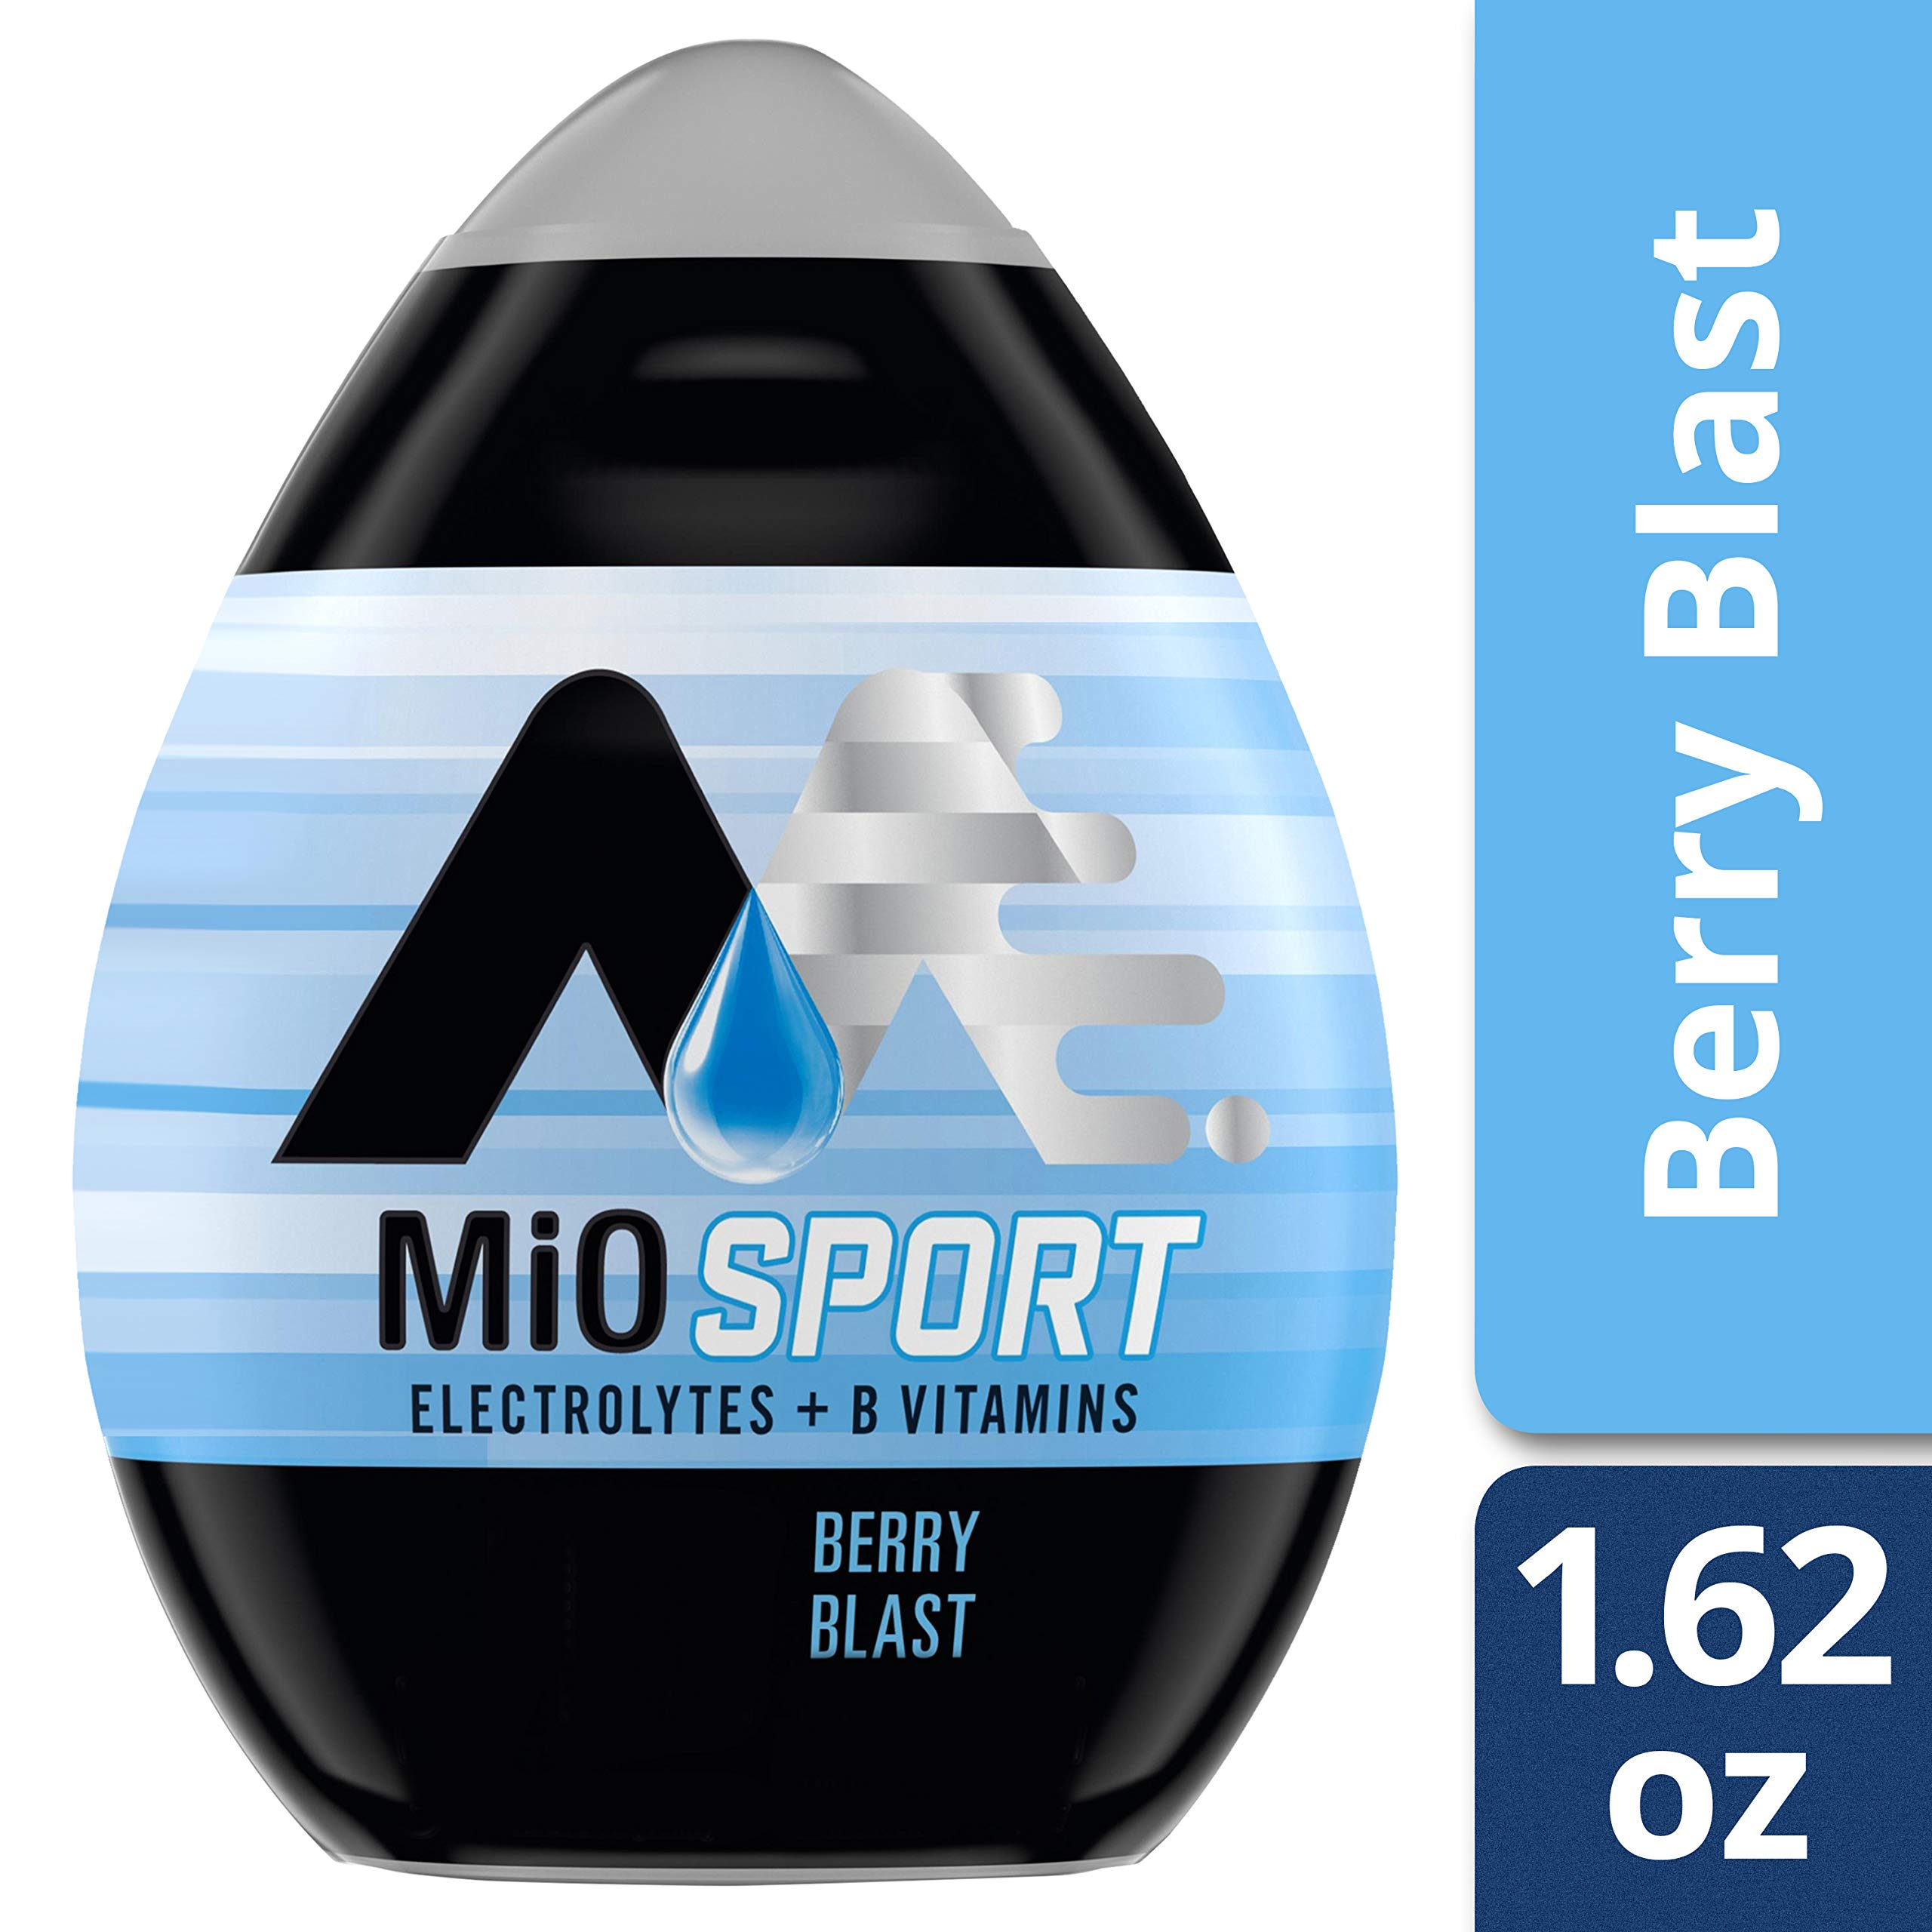 MiO Sport Berry Blast Liquid Water Enhancer , Caffeine Free, 1.62 fl oz Bottle by Mio